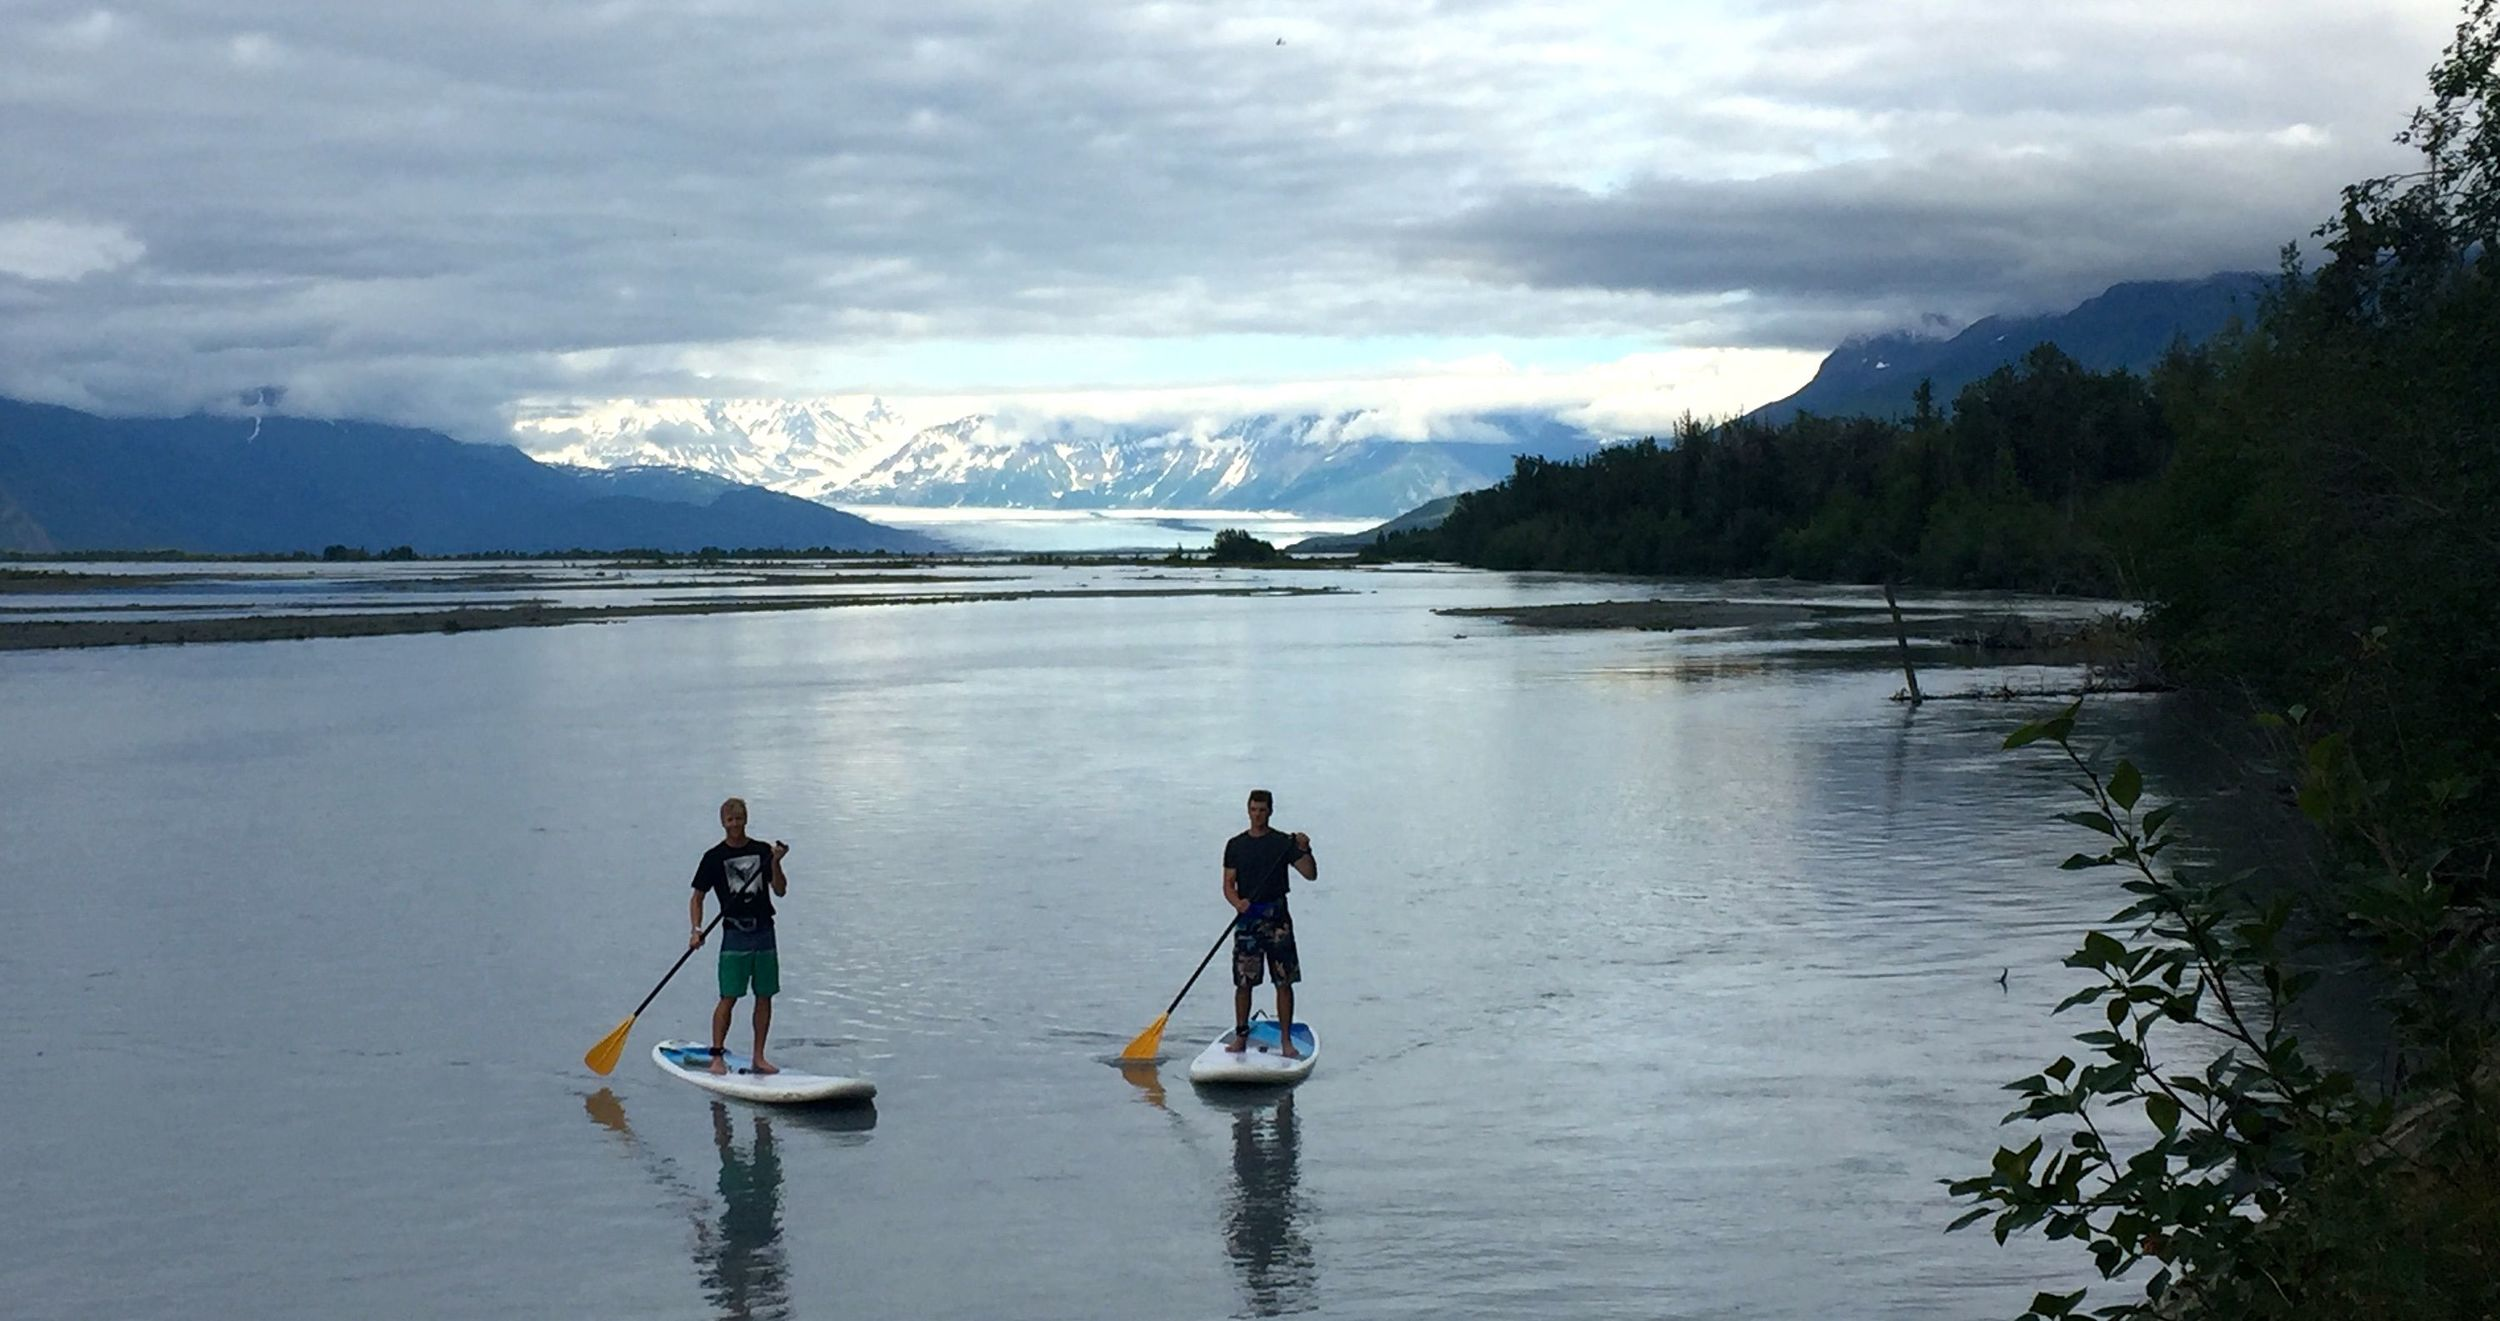 Erik and Jo taking a trip down the river on paddle boards.